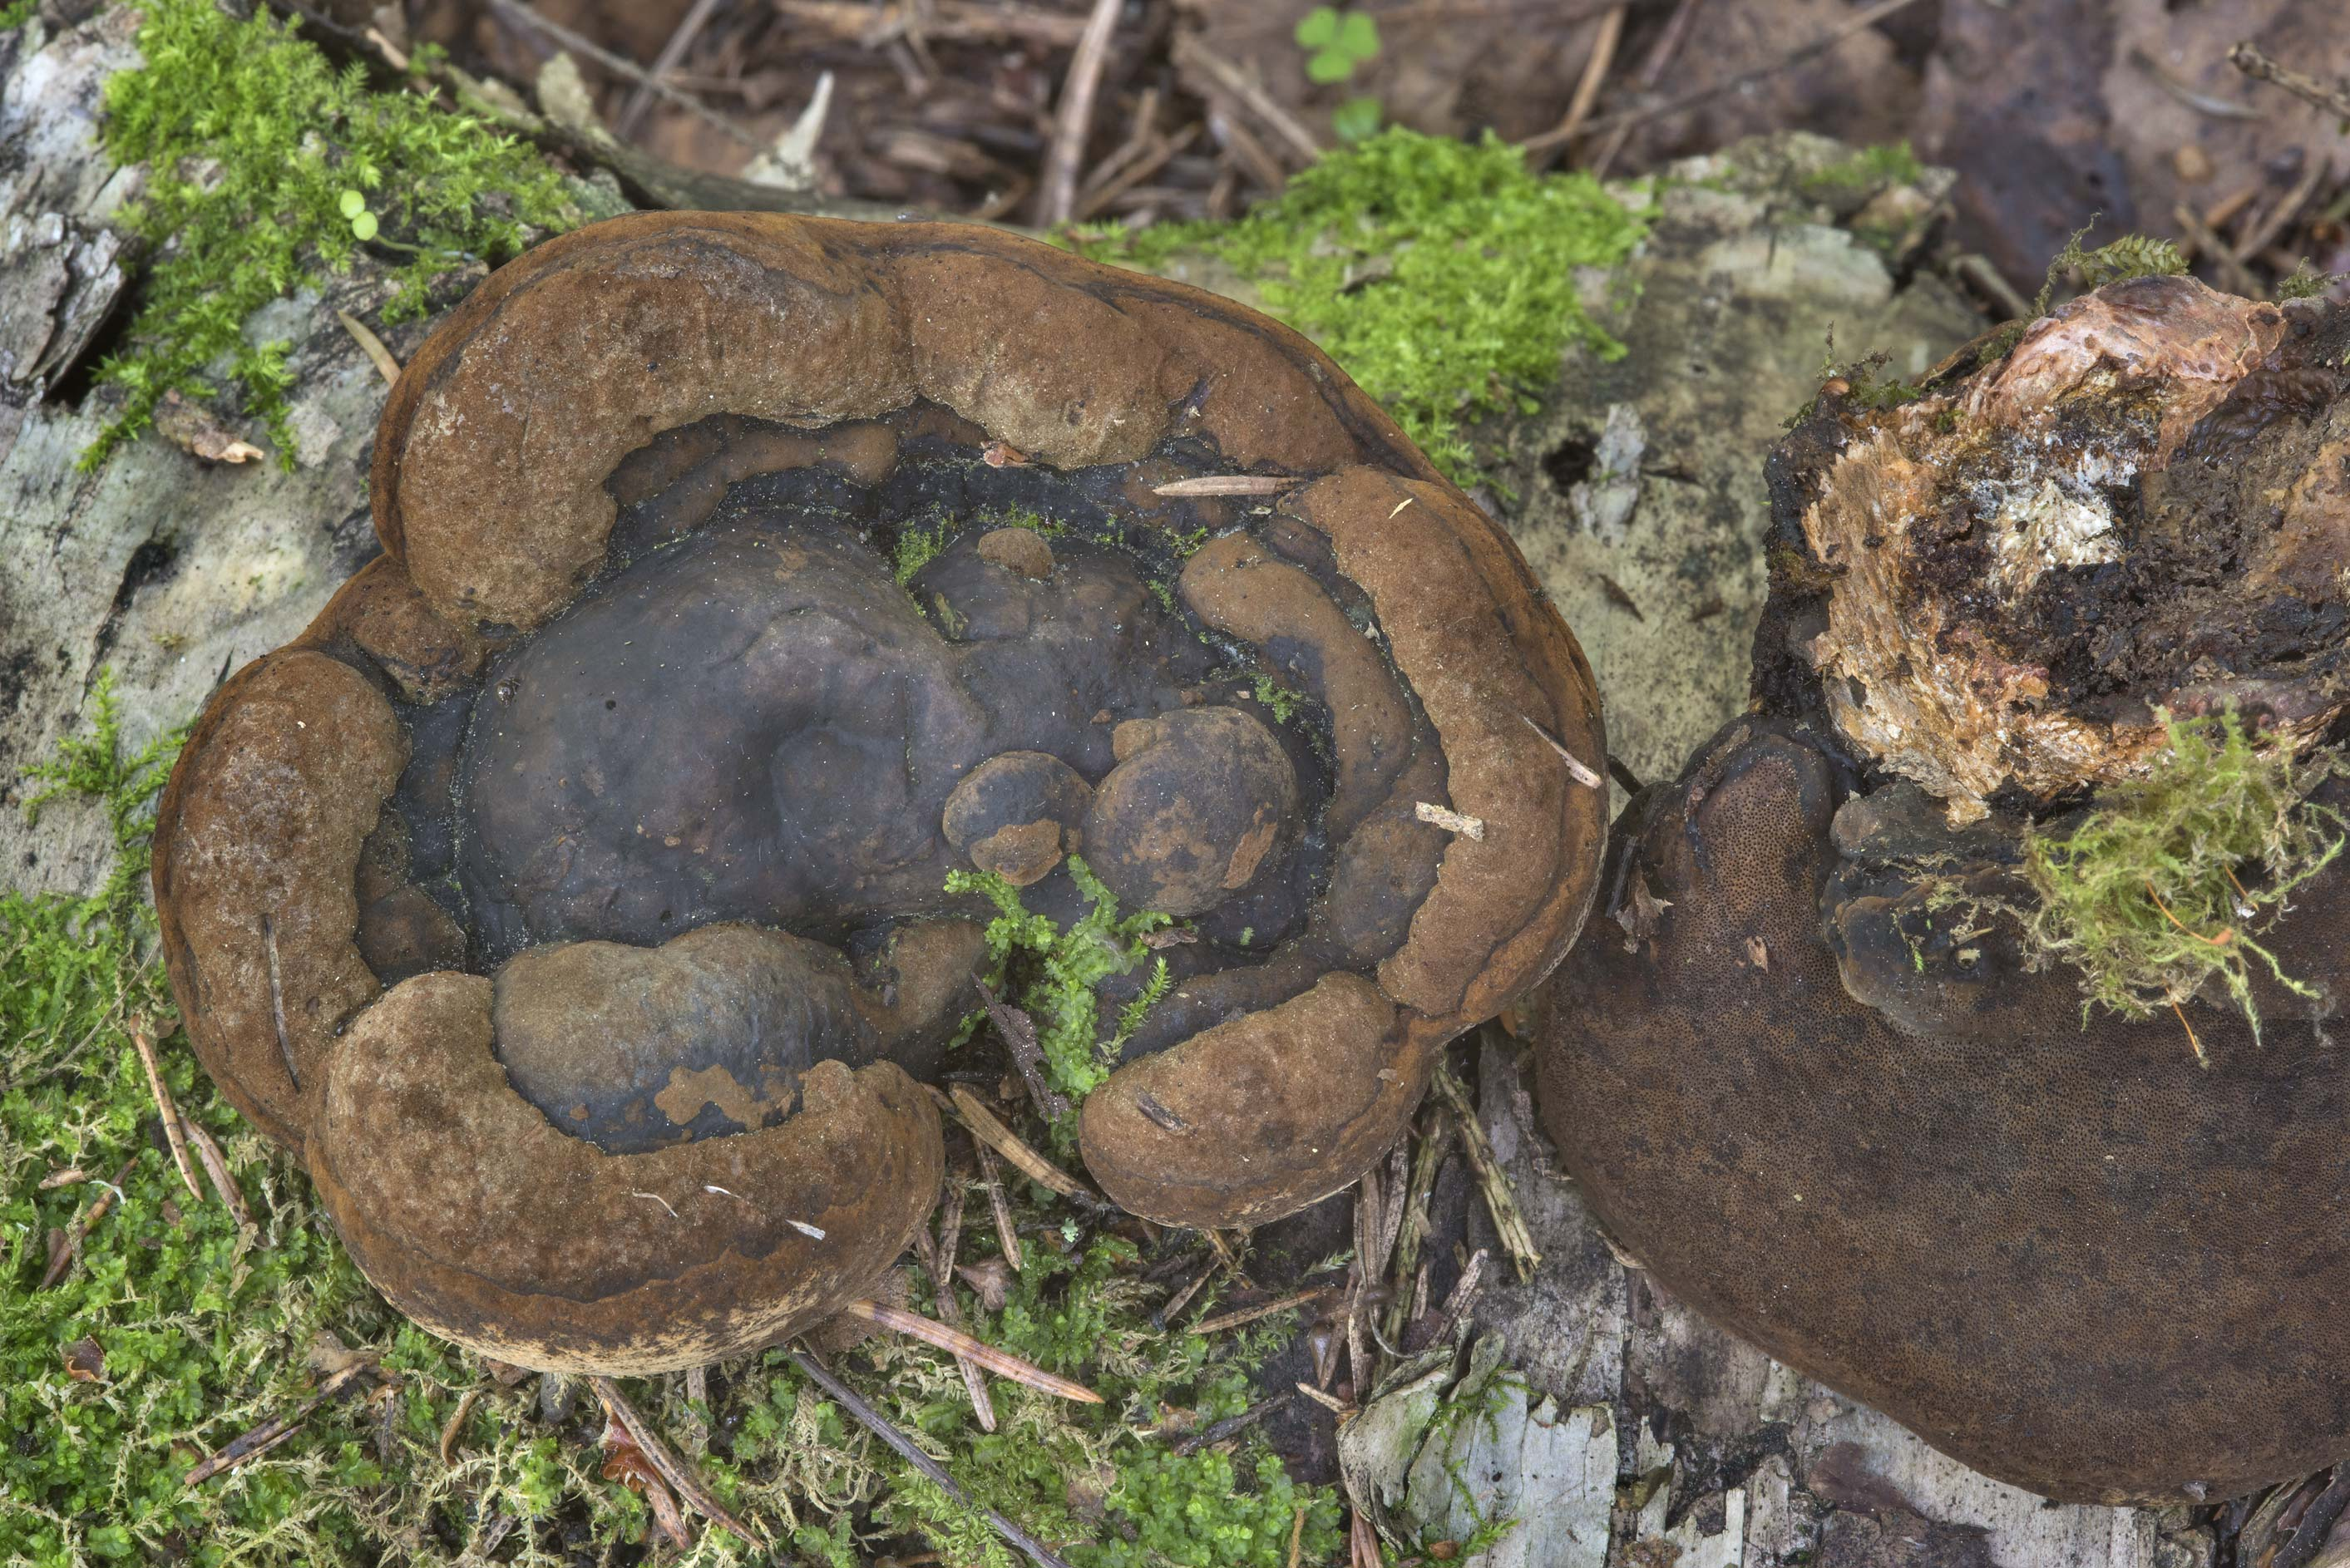 Phellinus polypore mushrooms on a mossy log near...north-west from St.Petersburg. Russia